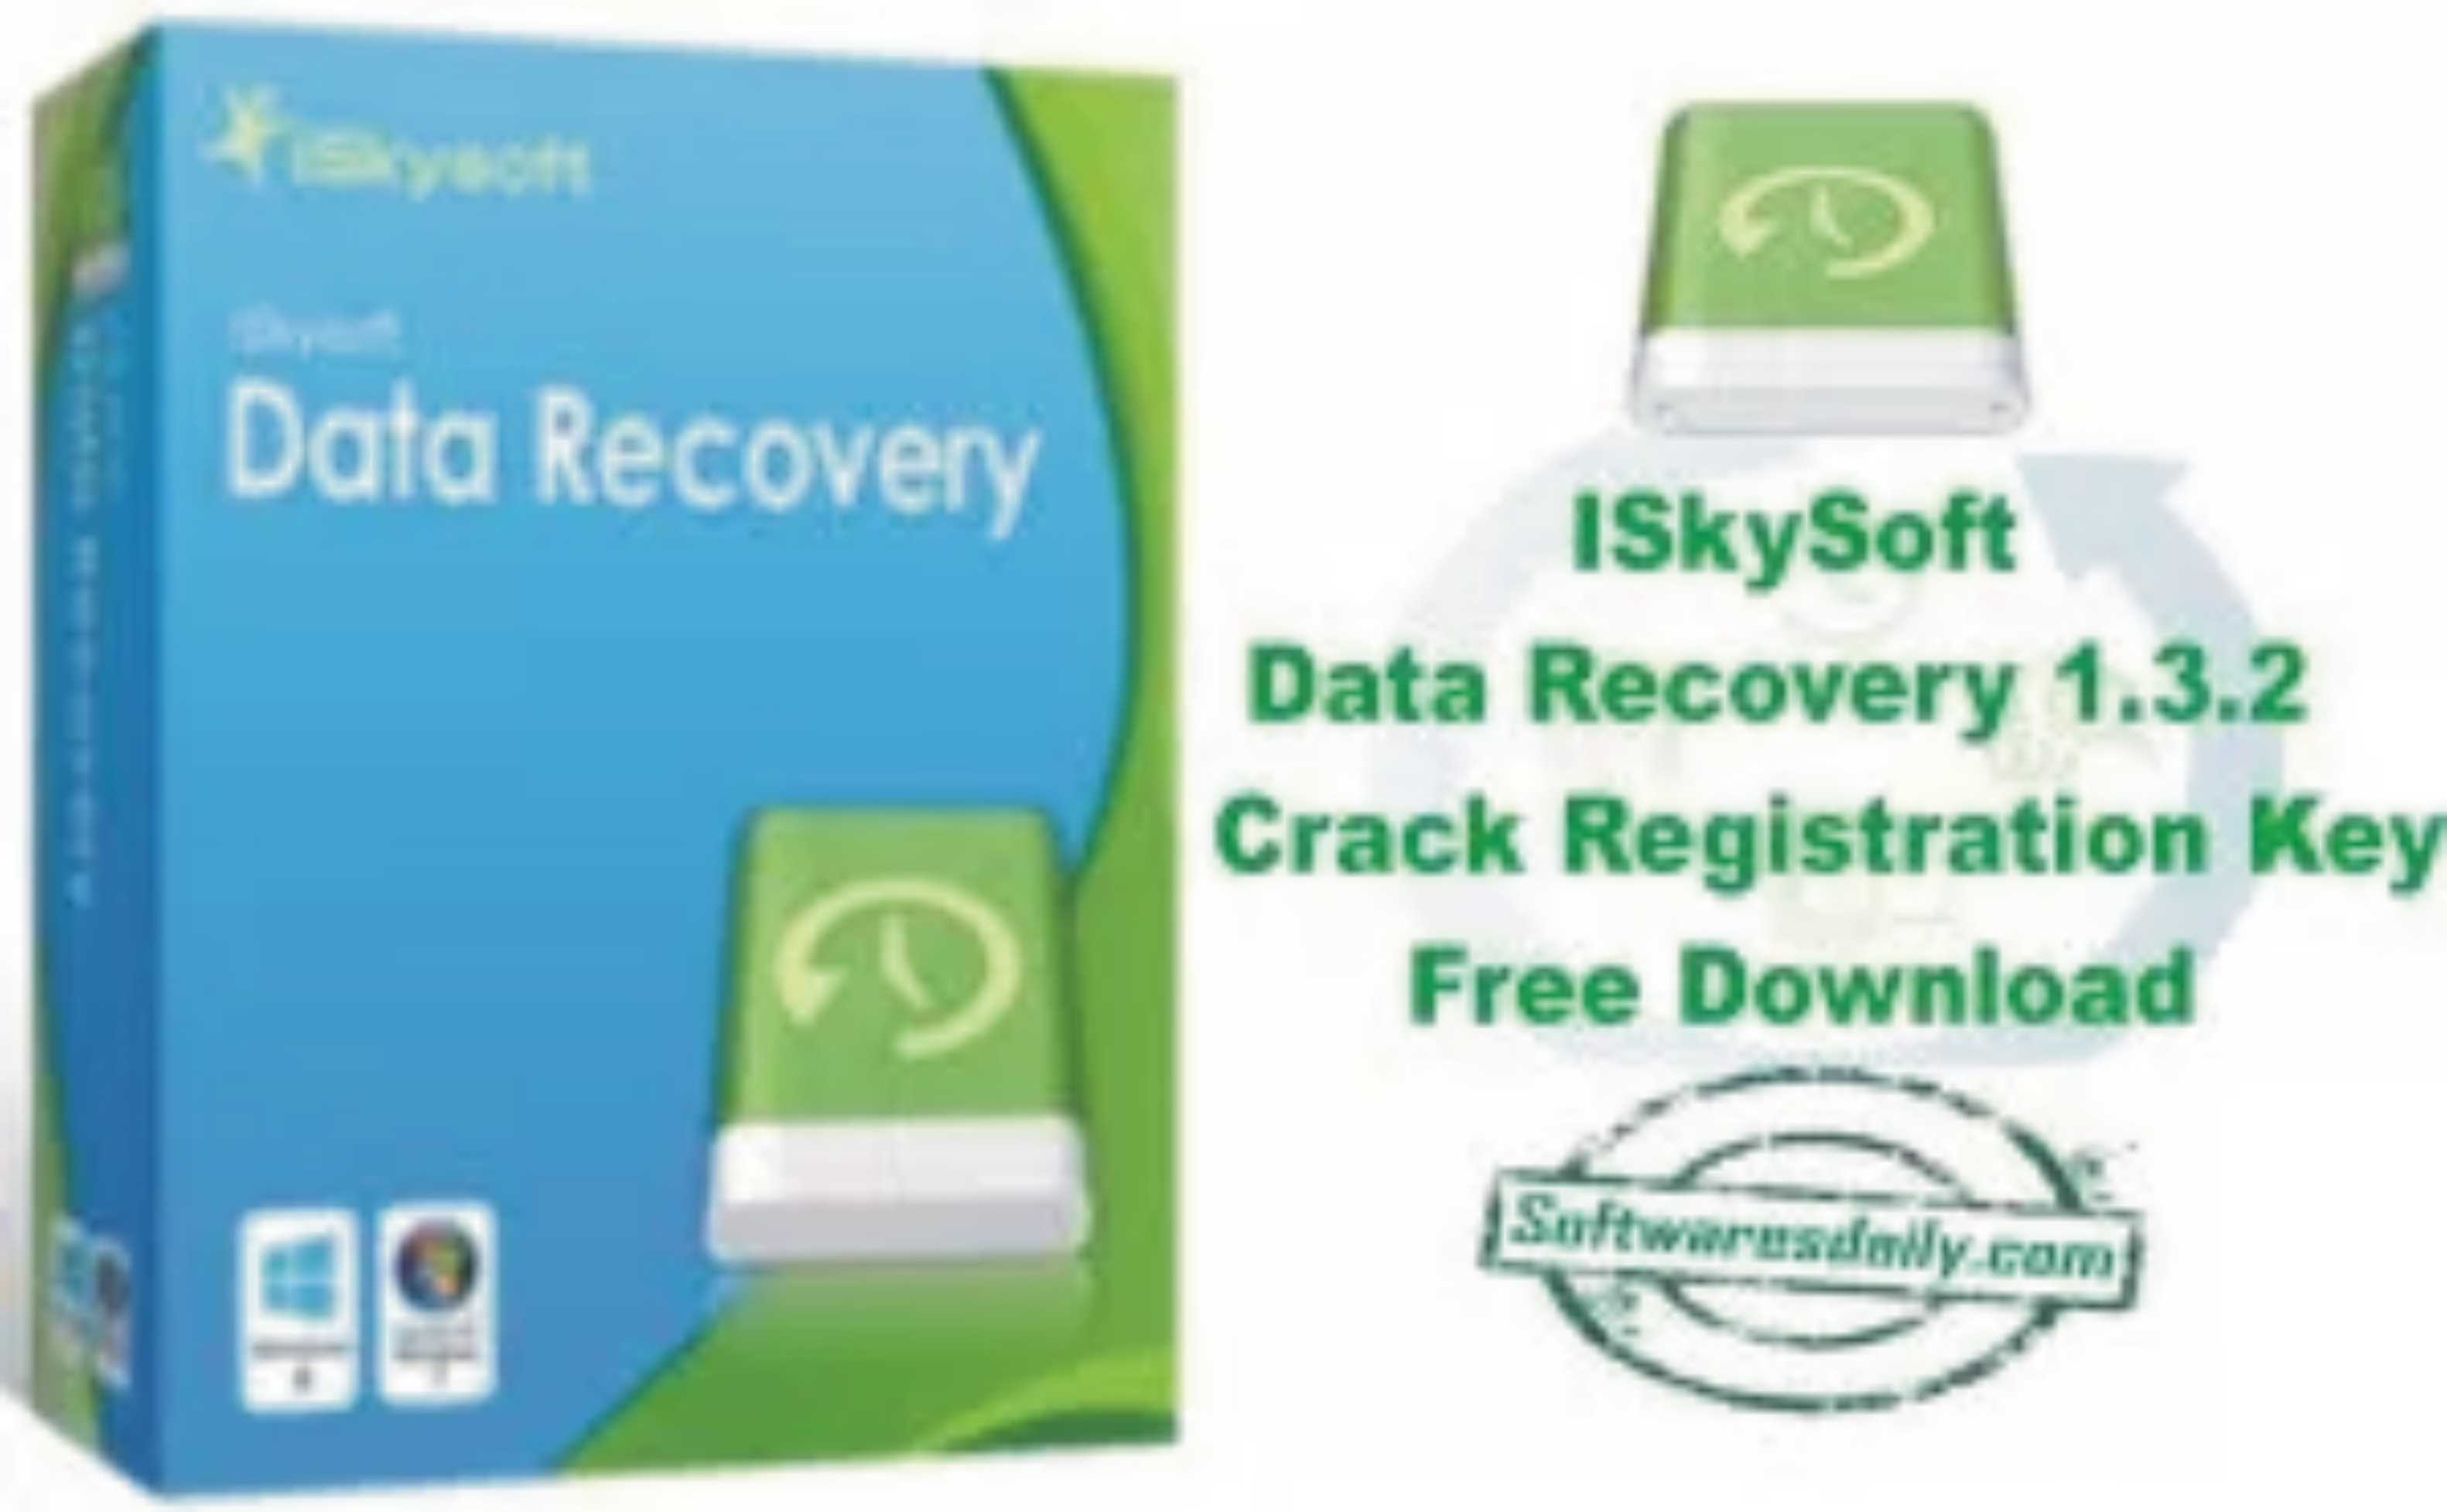 data recovery with crack